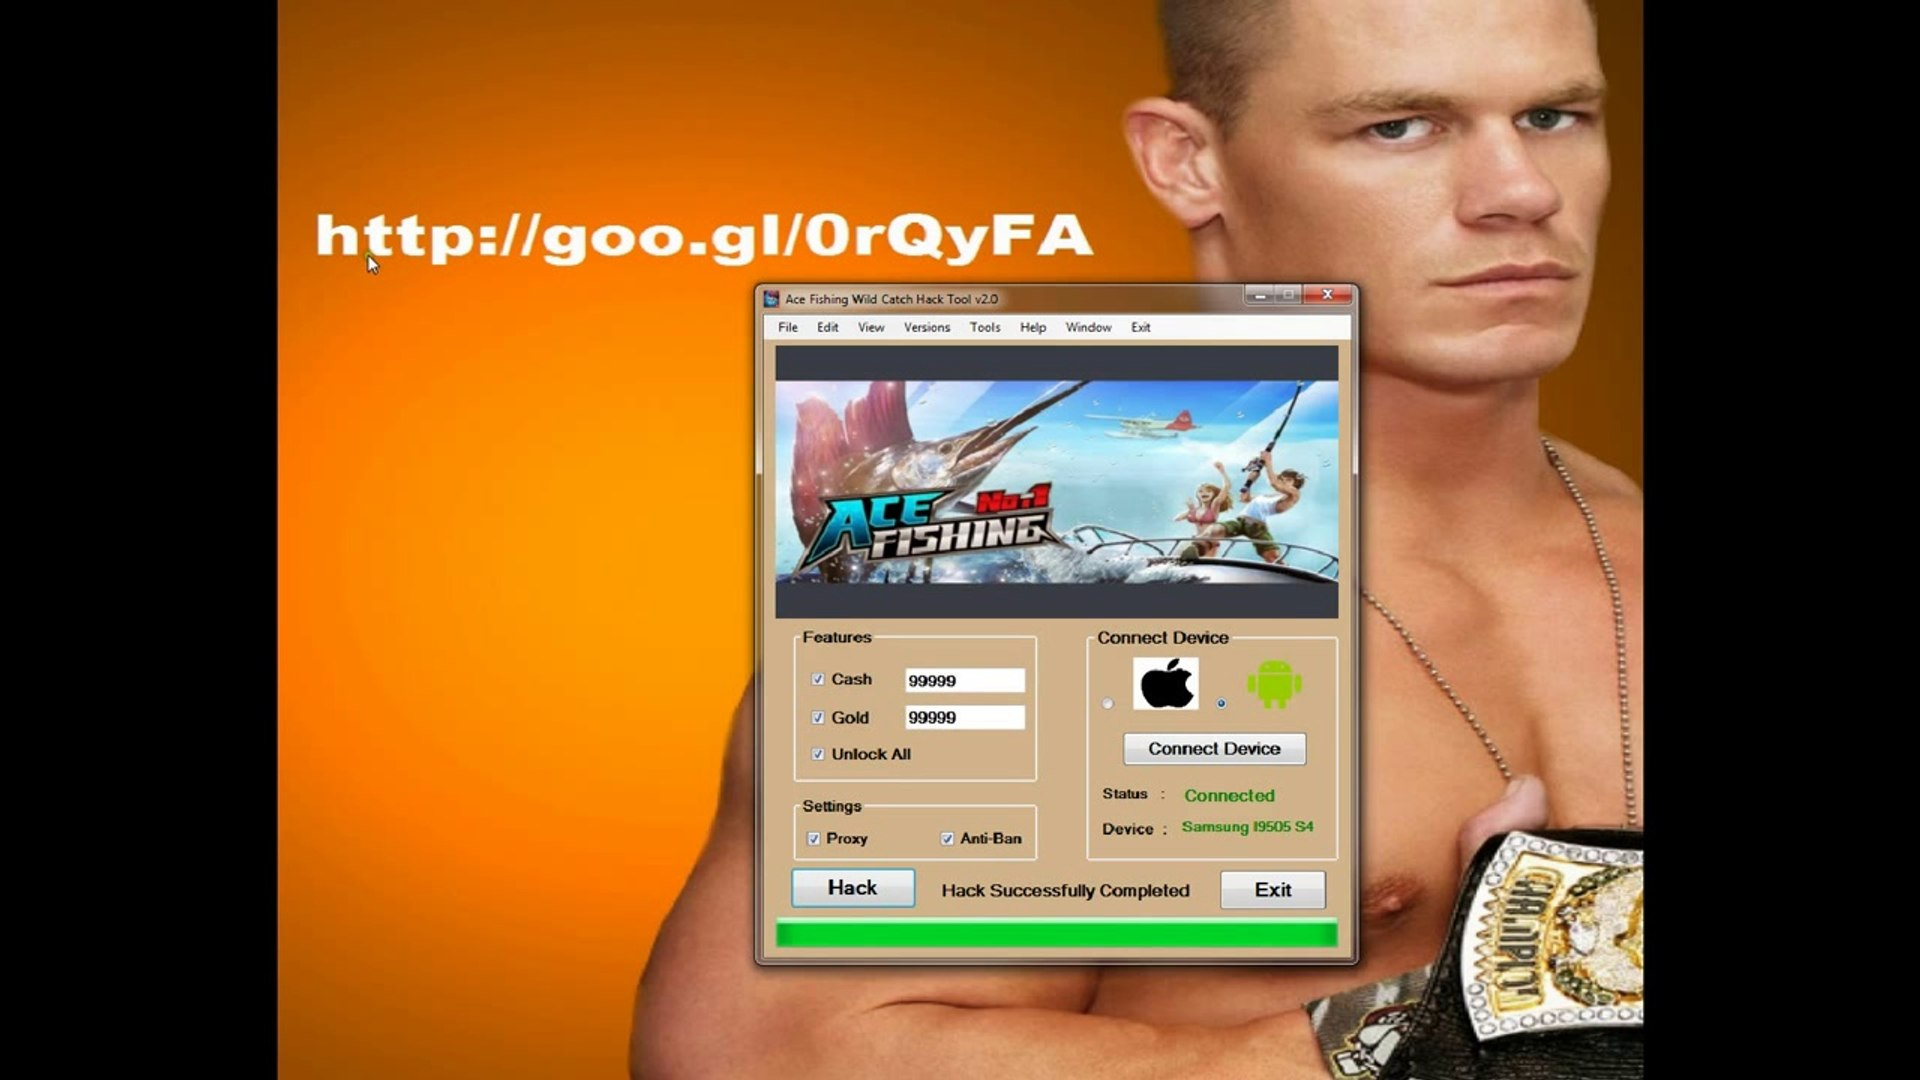 Ace Fishing Wild Catch Hacks for 99999 Gold & Cash Best Ace Fishing Wild Catch Hack Cash & G